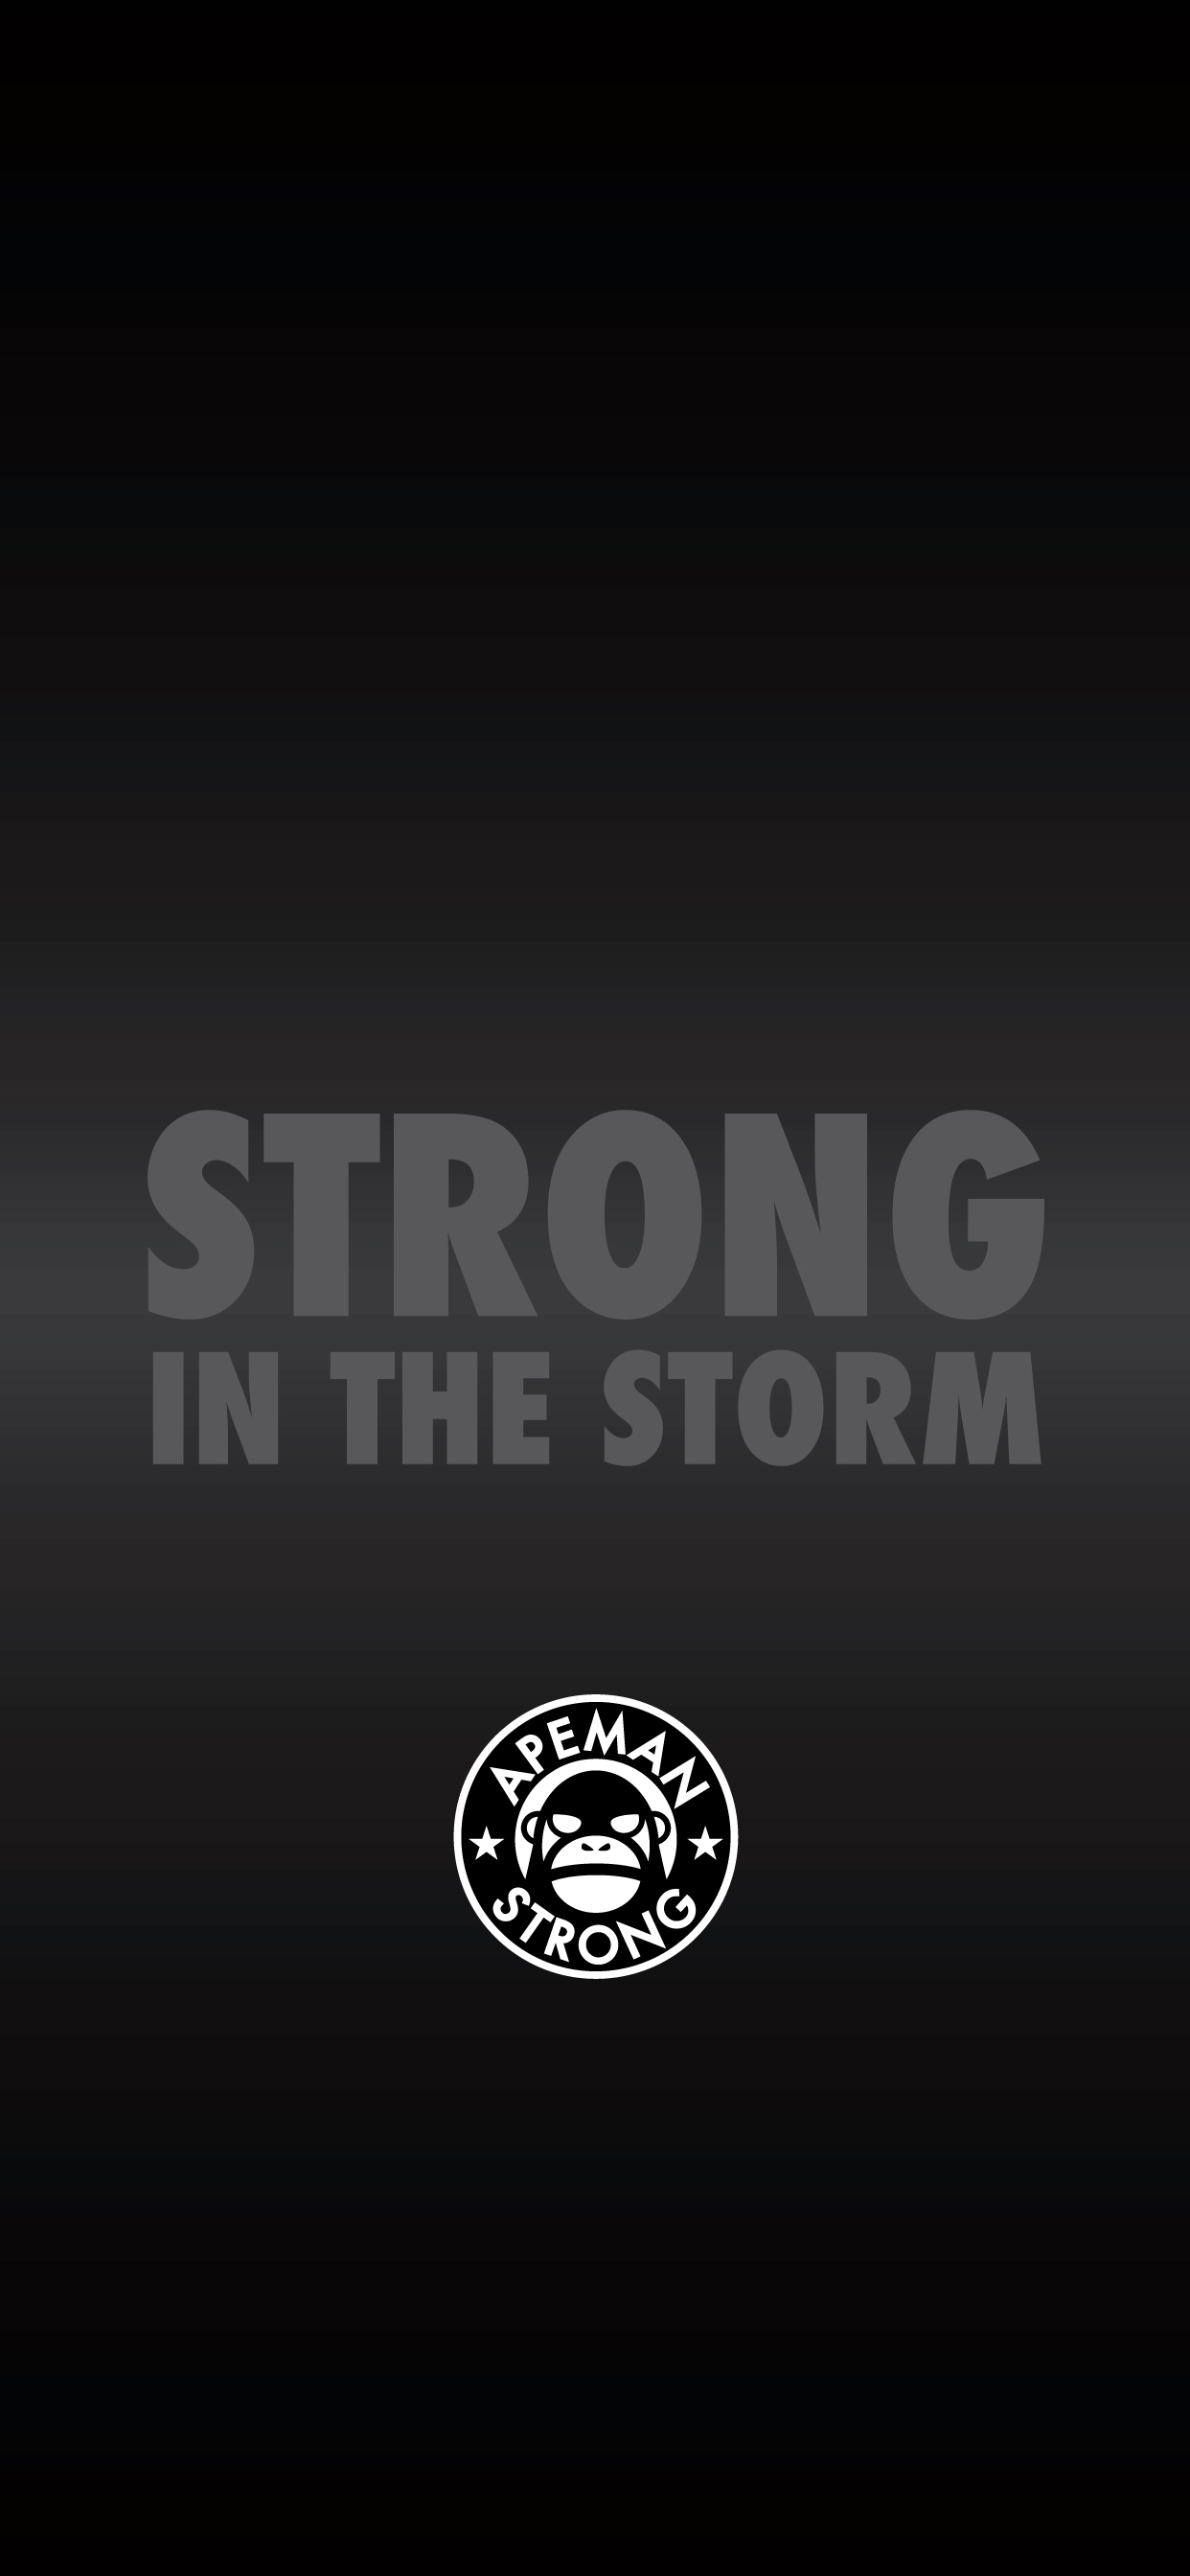 STRONG-IN-THE-STORM.jpg